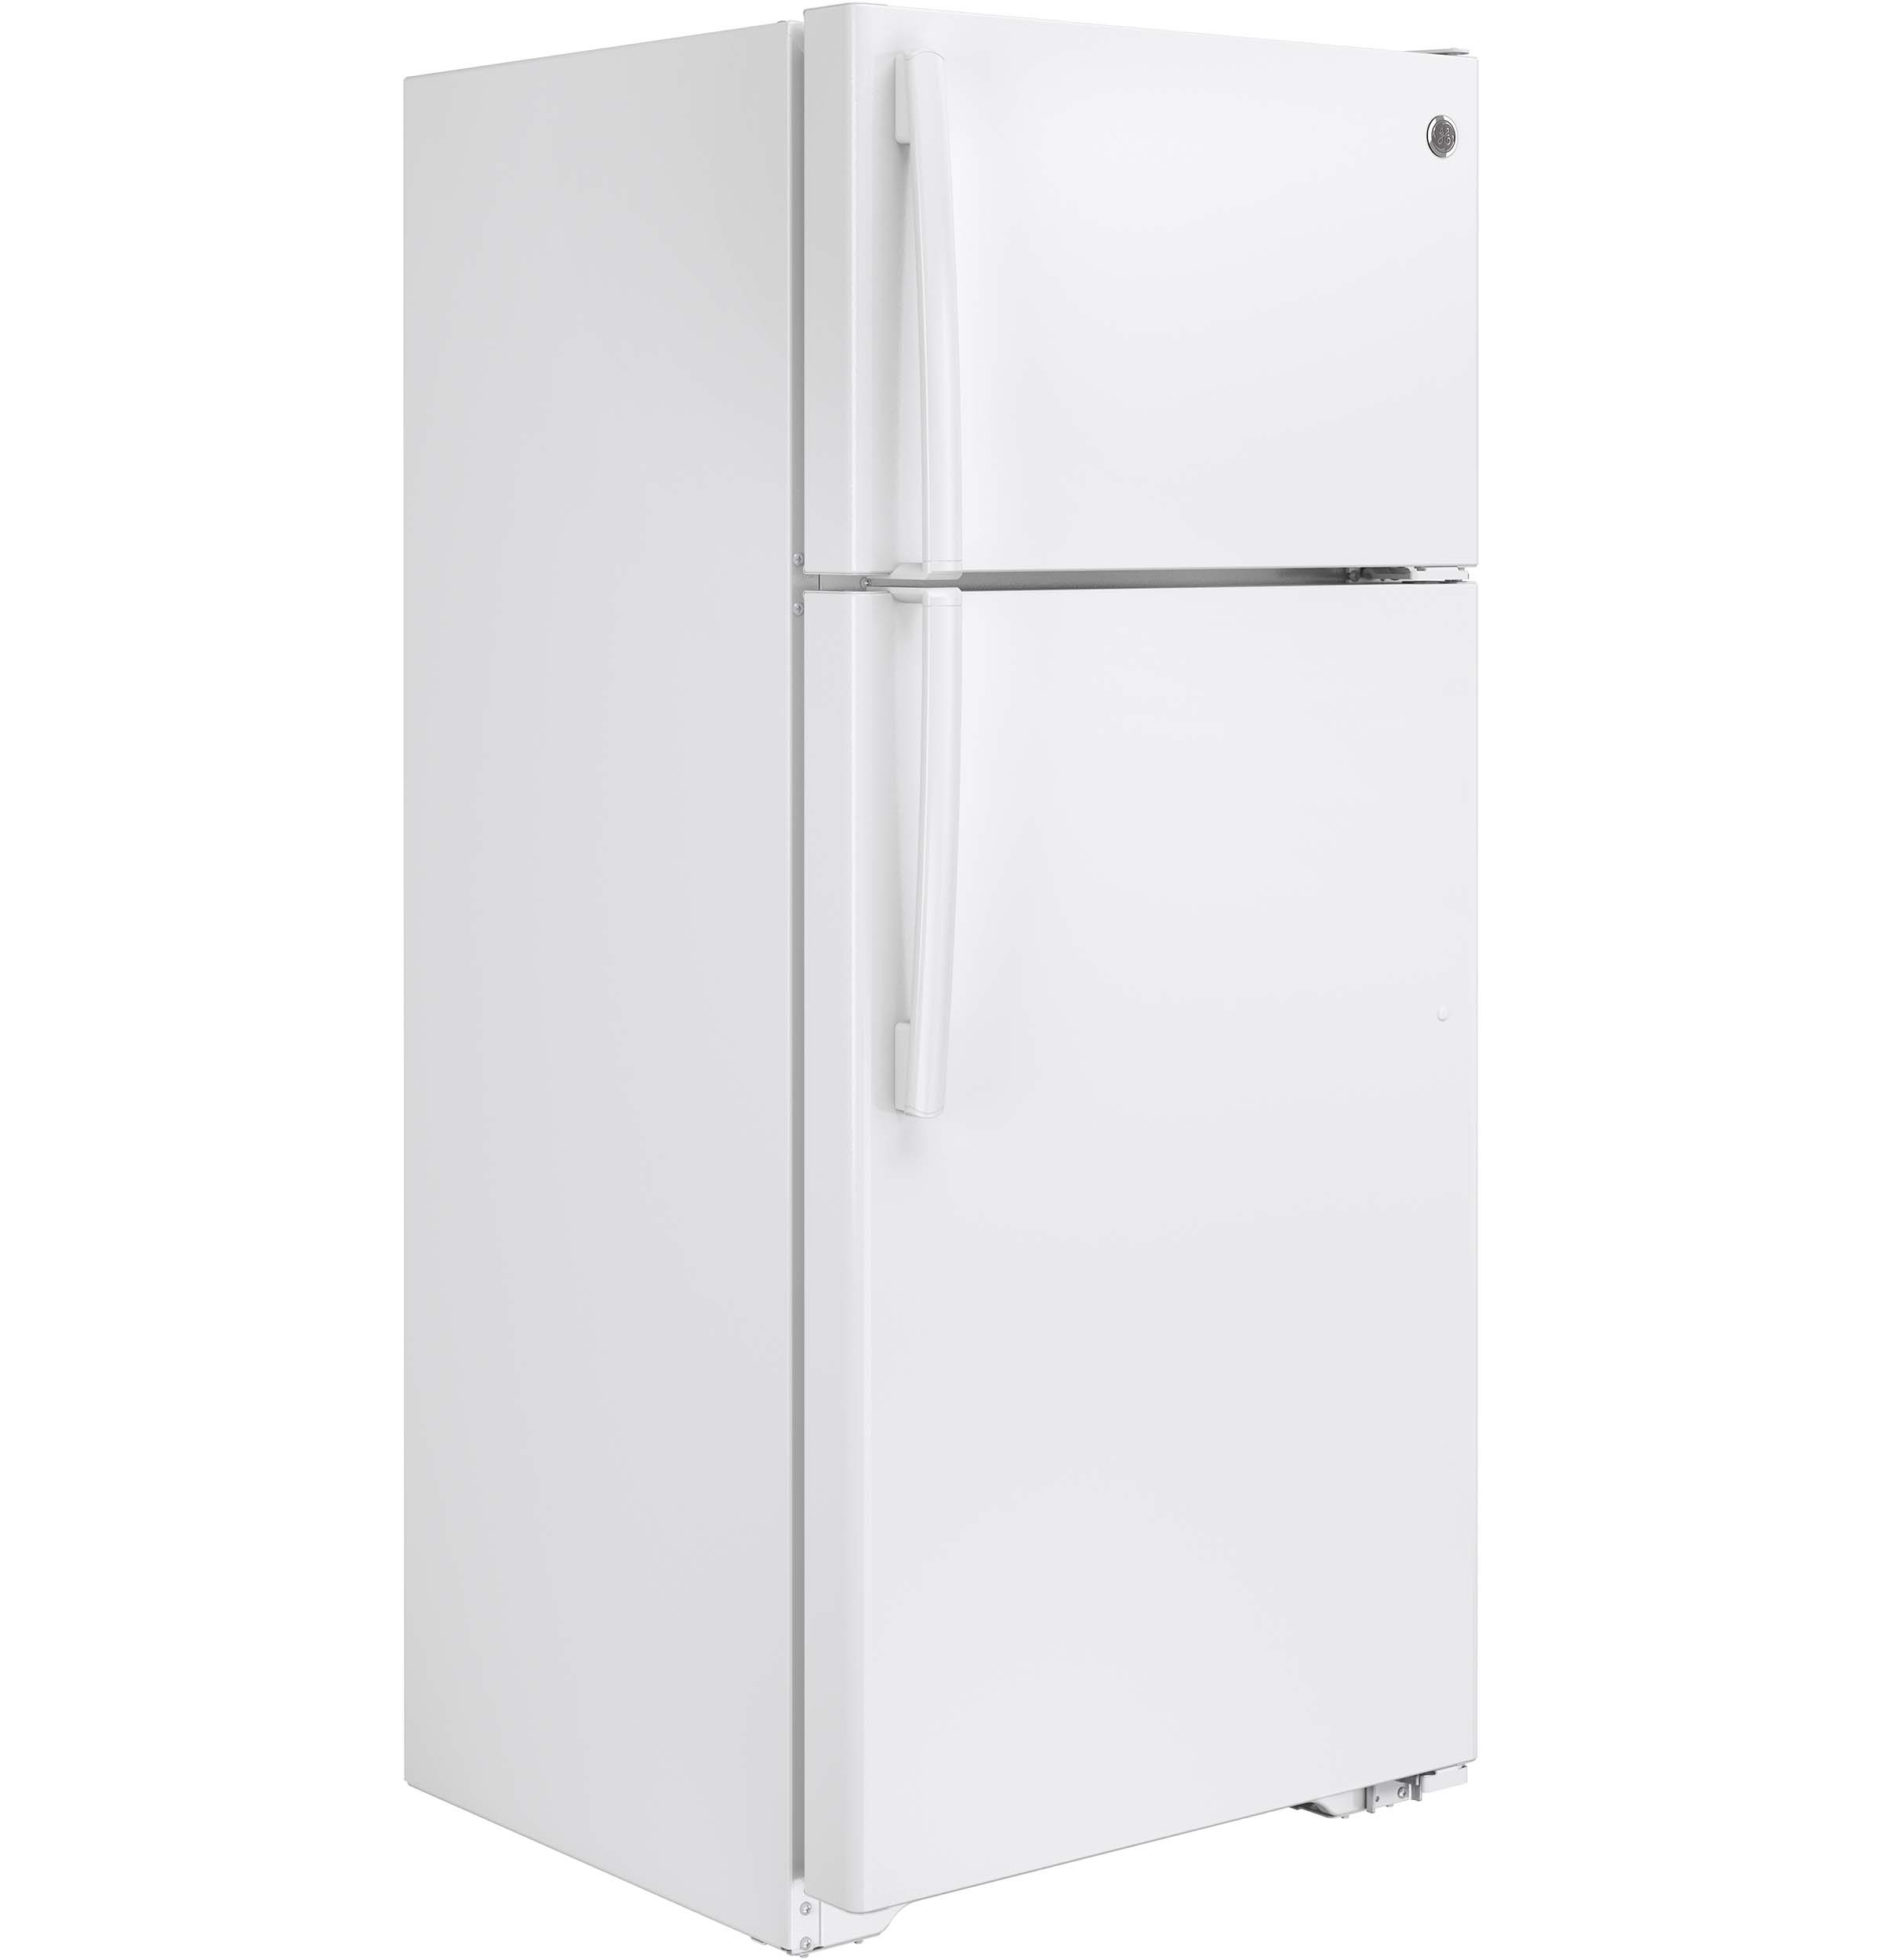 GE 15 5 Cu Ft Top Freezer Refrigerator GTS16DTHWW